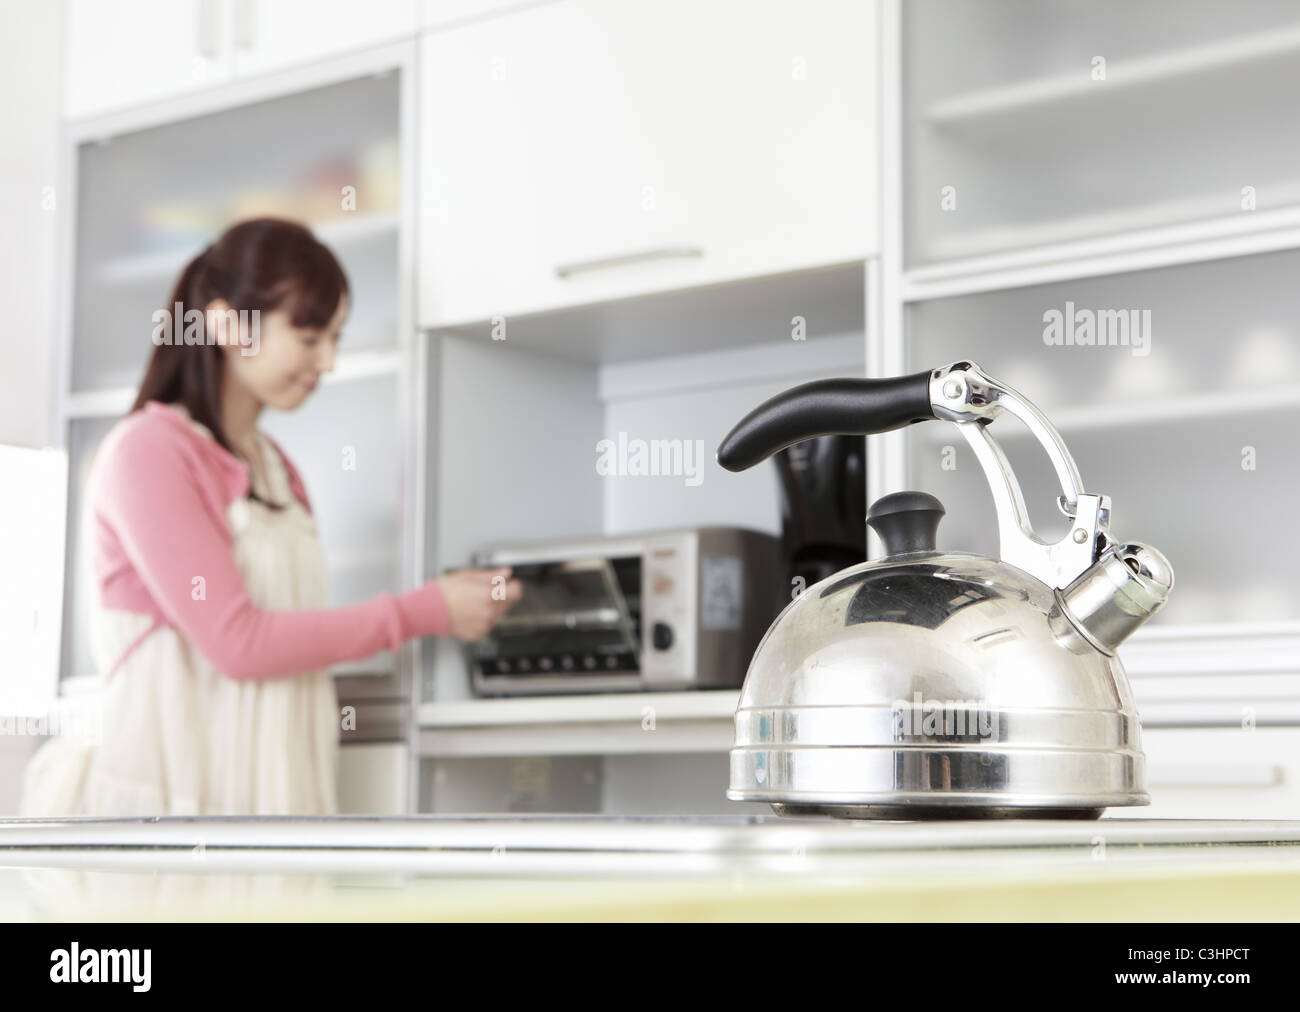 Kitchen Kettle Stock Photos & Kitchen Kettle Stock Images - Alamy